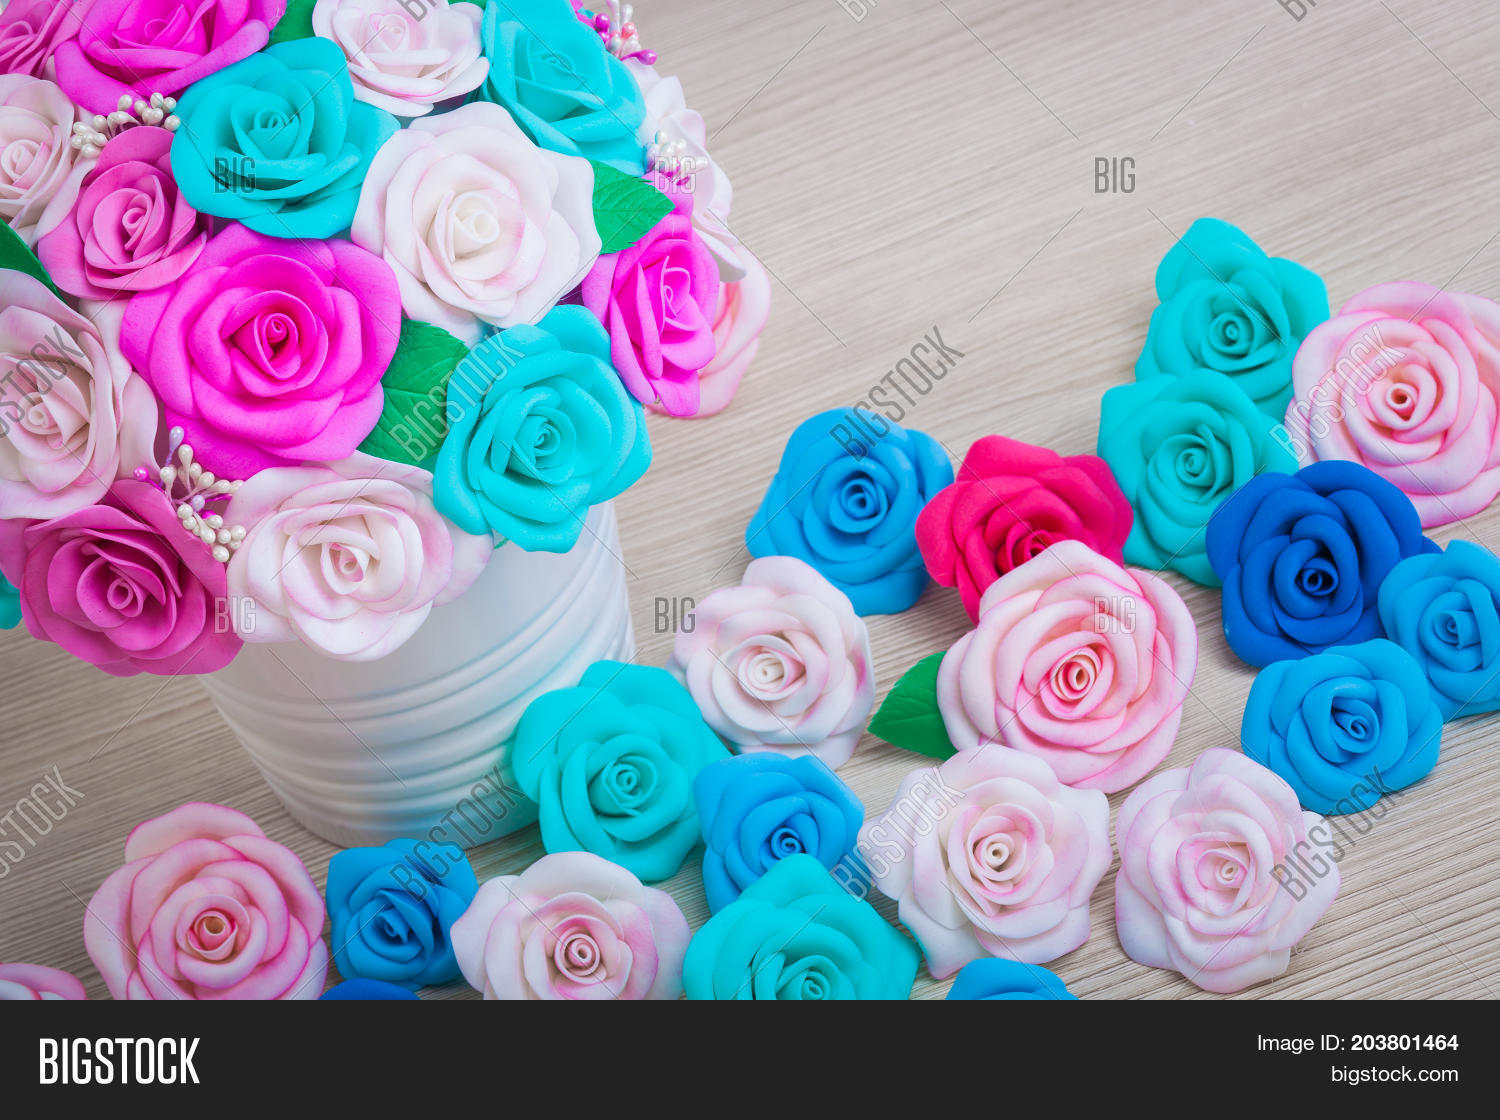 Flowers roses foam image photo free trial bigstock flowers roses from foam pink red blue white blue flowers in a white pot next are mightylinksfo